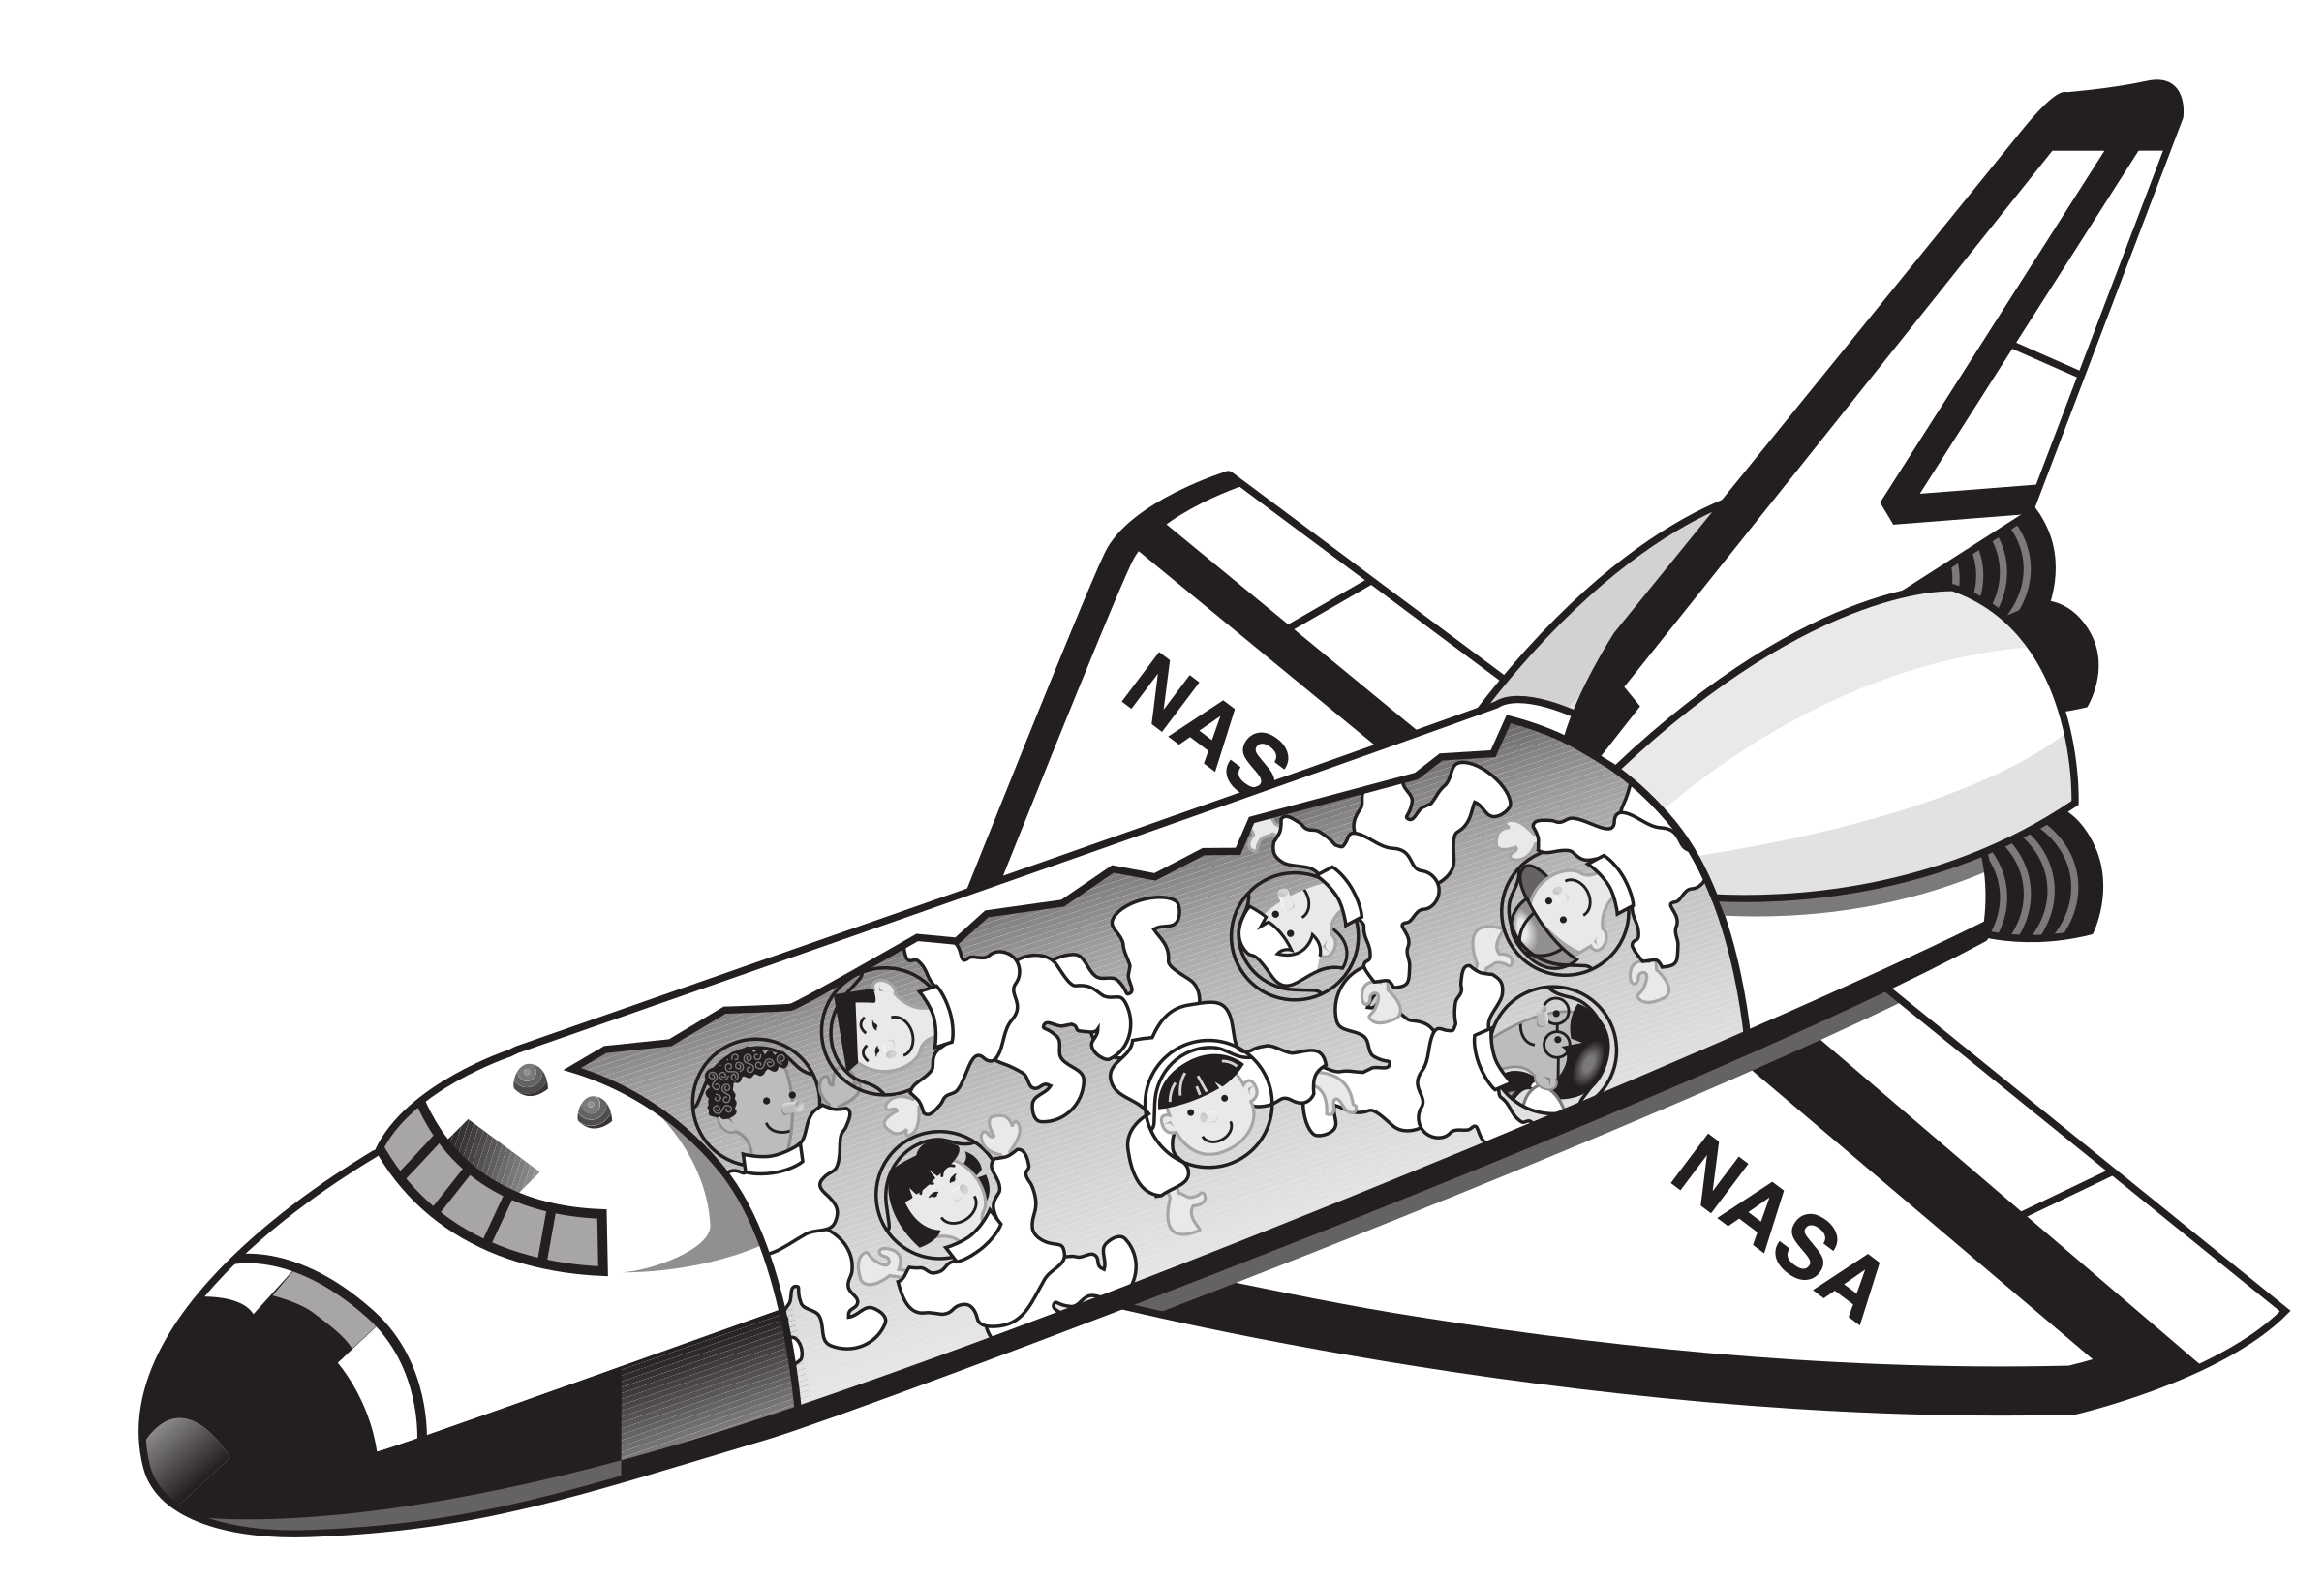 Space shuttle with kids floating inside it by rejon